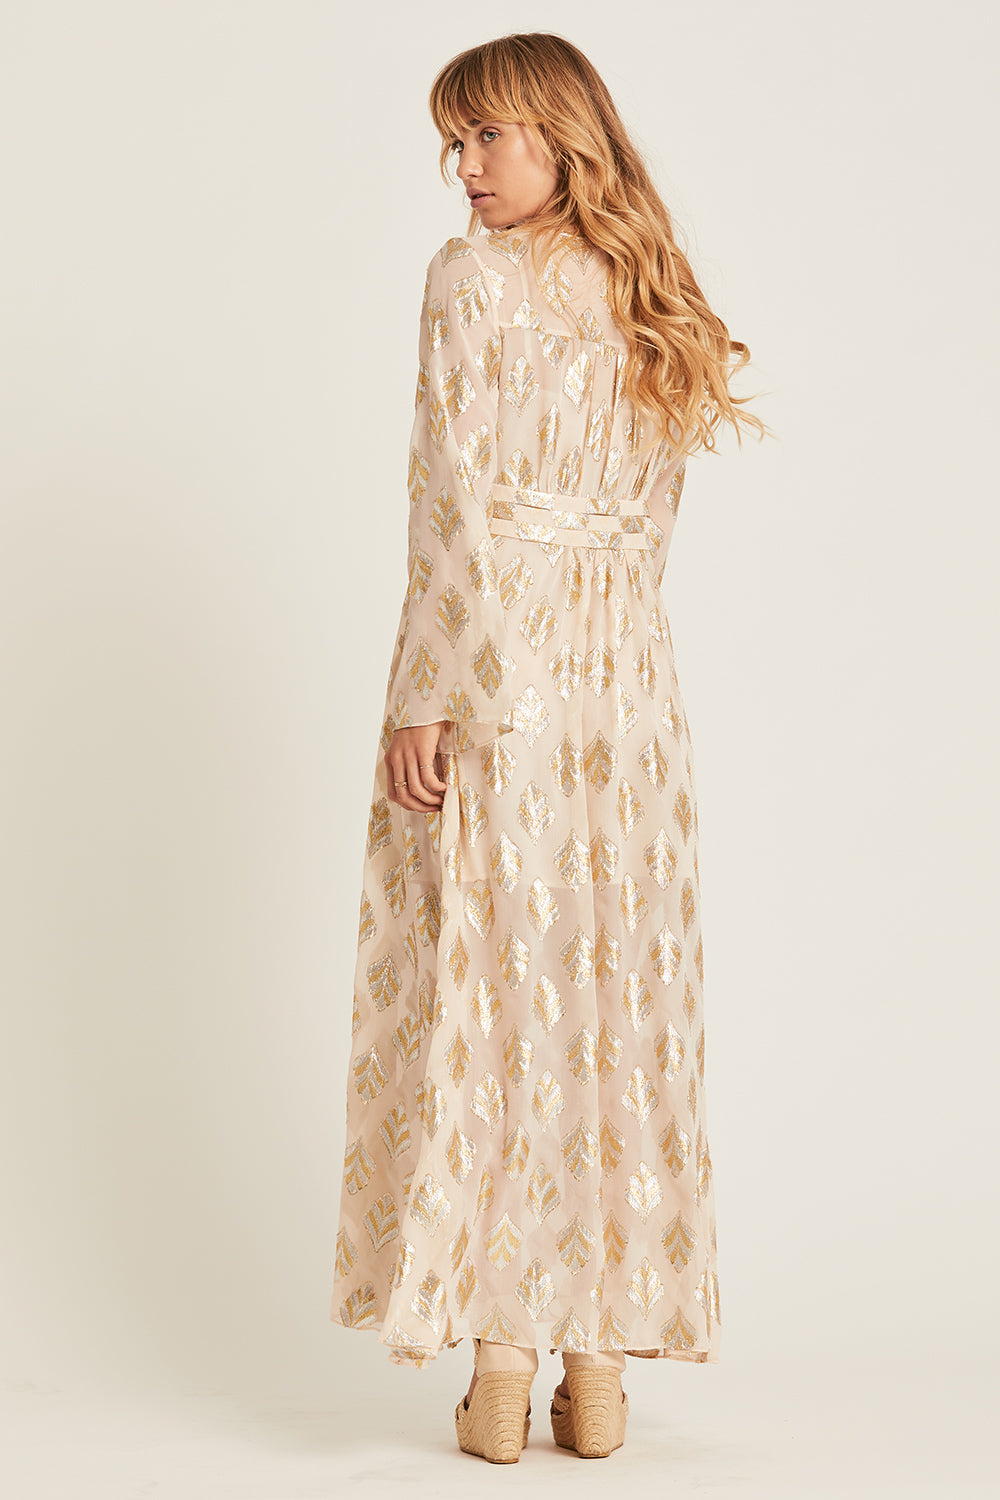 Celeste Maxi Dress in Crescent